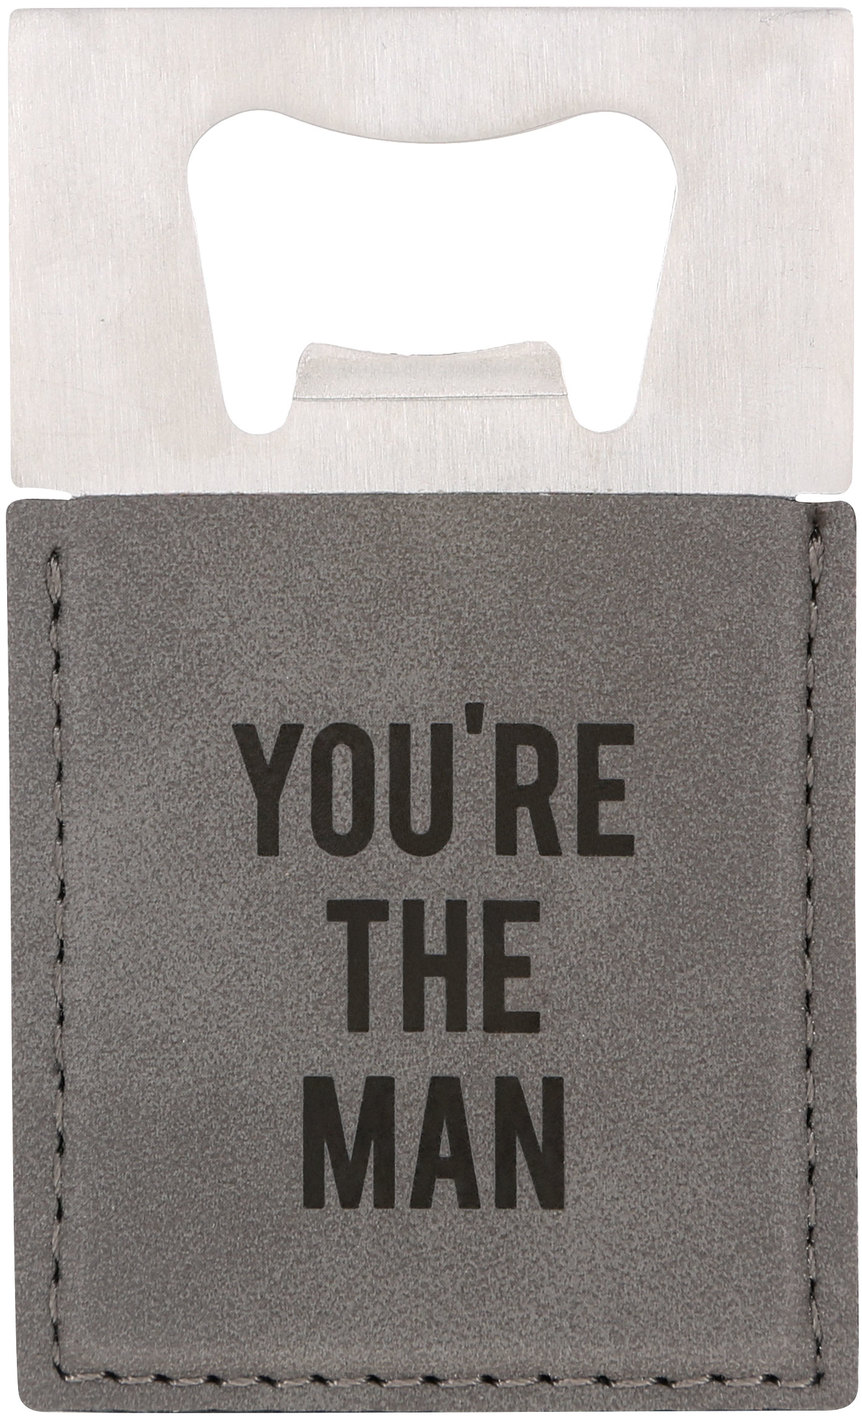 "You're the Man by Man Made - You're the Man - 2"" x 3.5"" Bottle Opener Magnet"